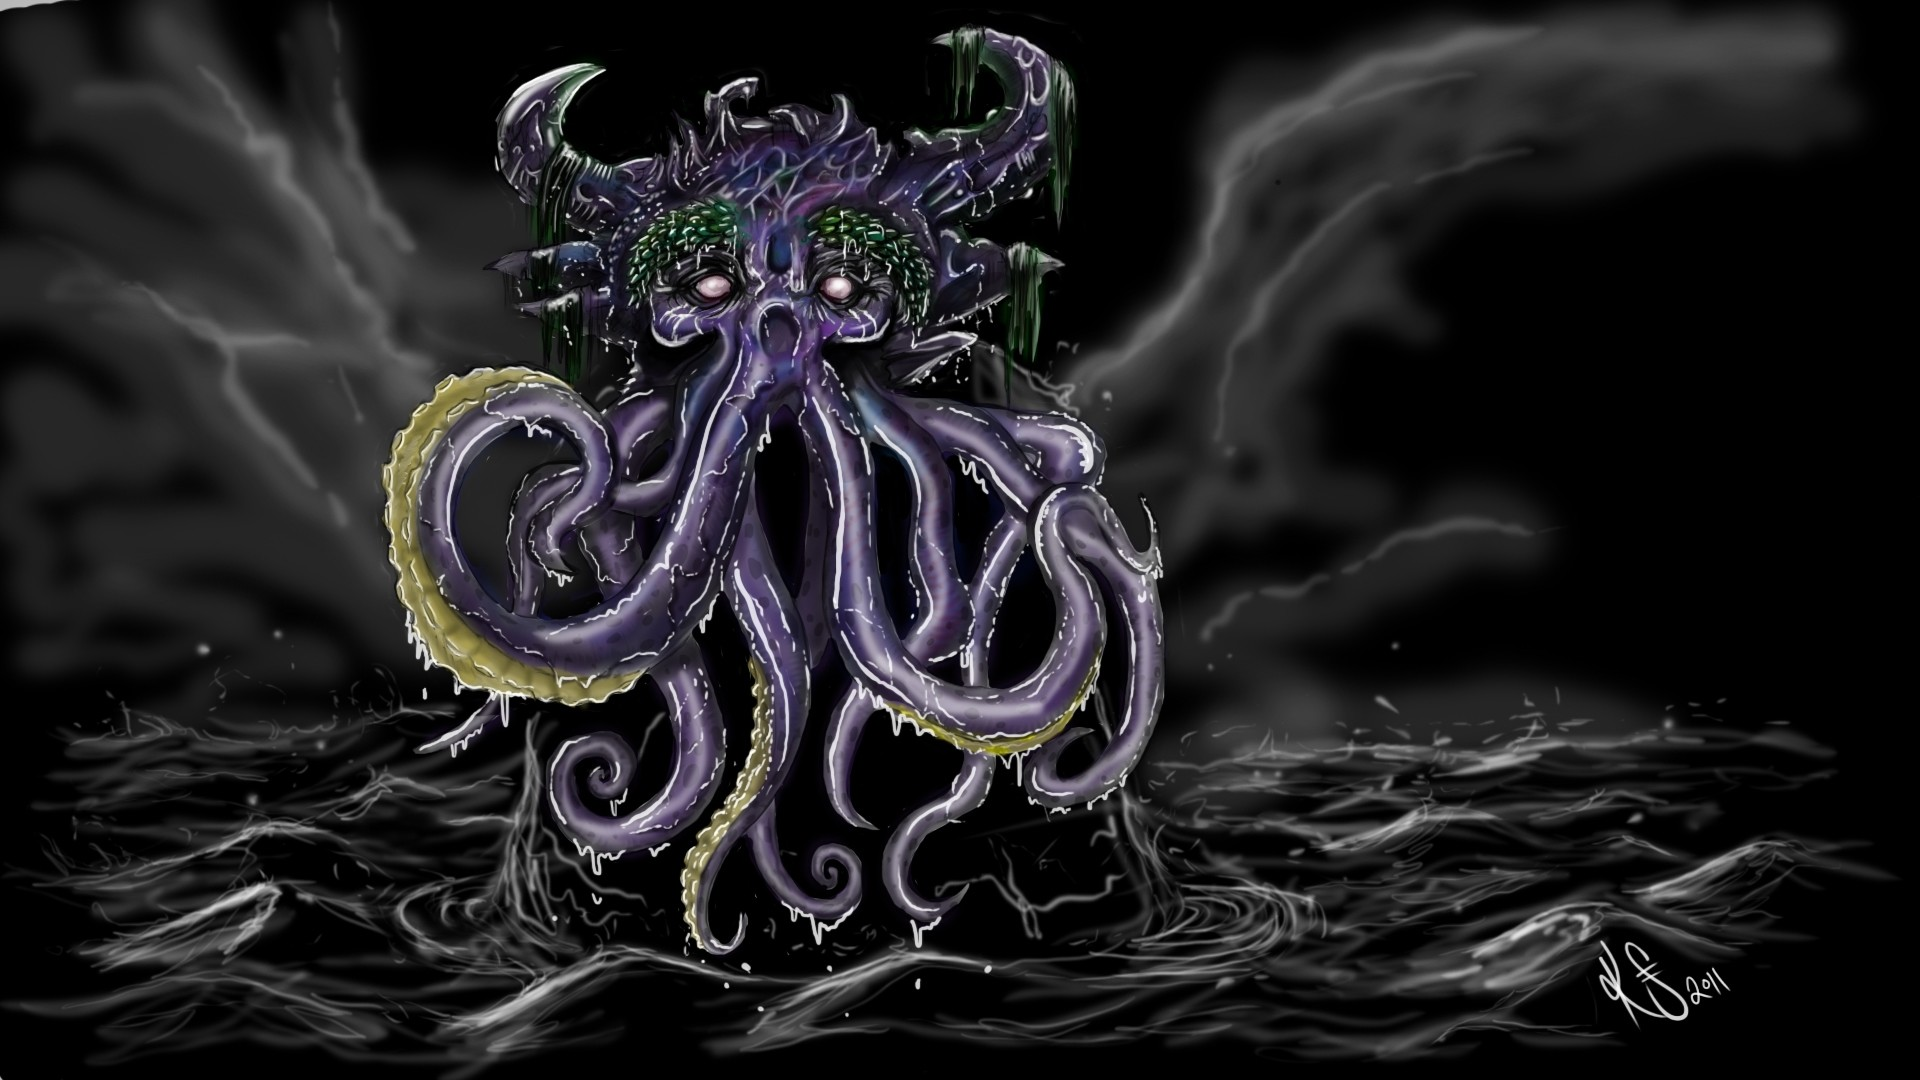 Res: 1920x1080, sea, clouds, octopus, art, monster, ocean, backgrounds, creature, waves,  cartoon wallpapers, dark, fantasy, hd artworks, sky,, cthulhu,colourful, ...